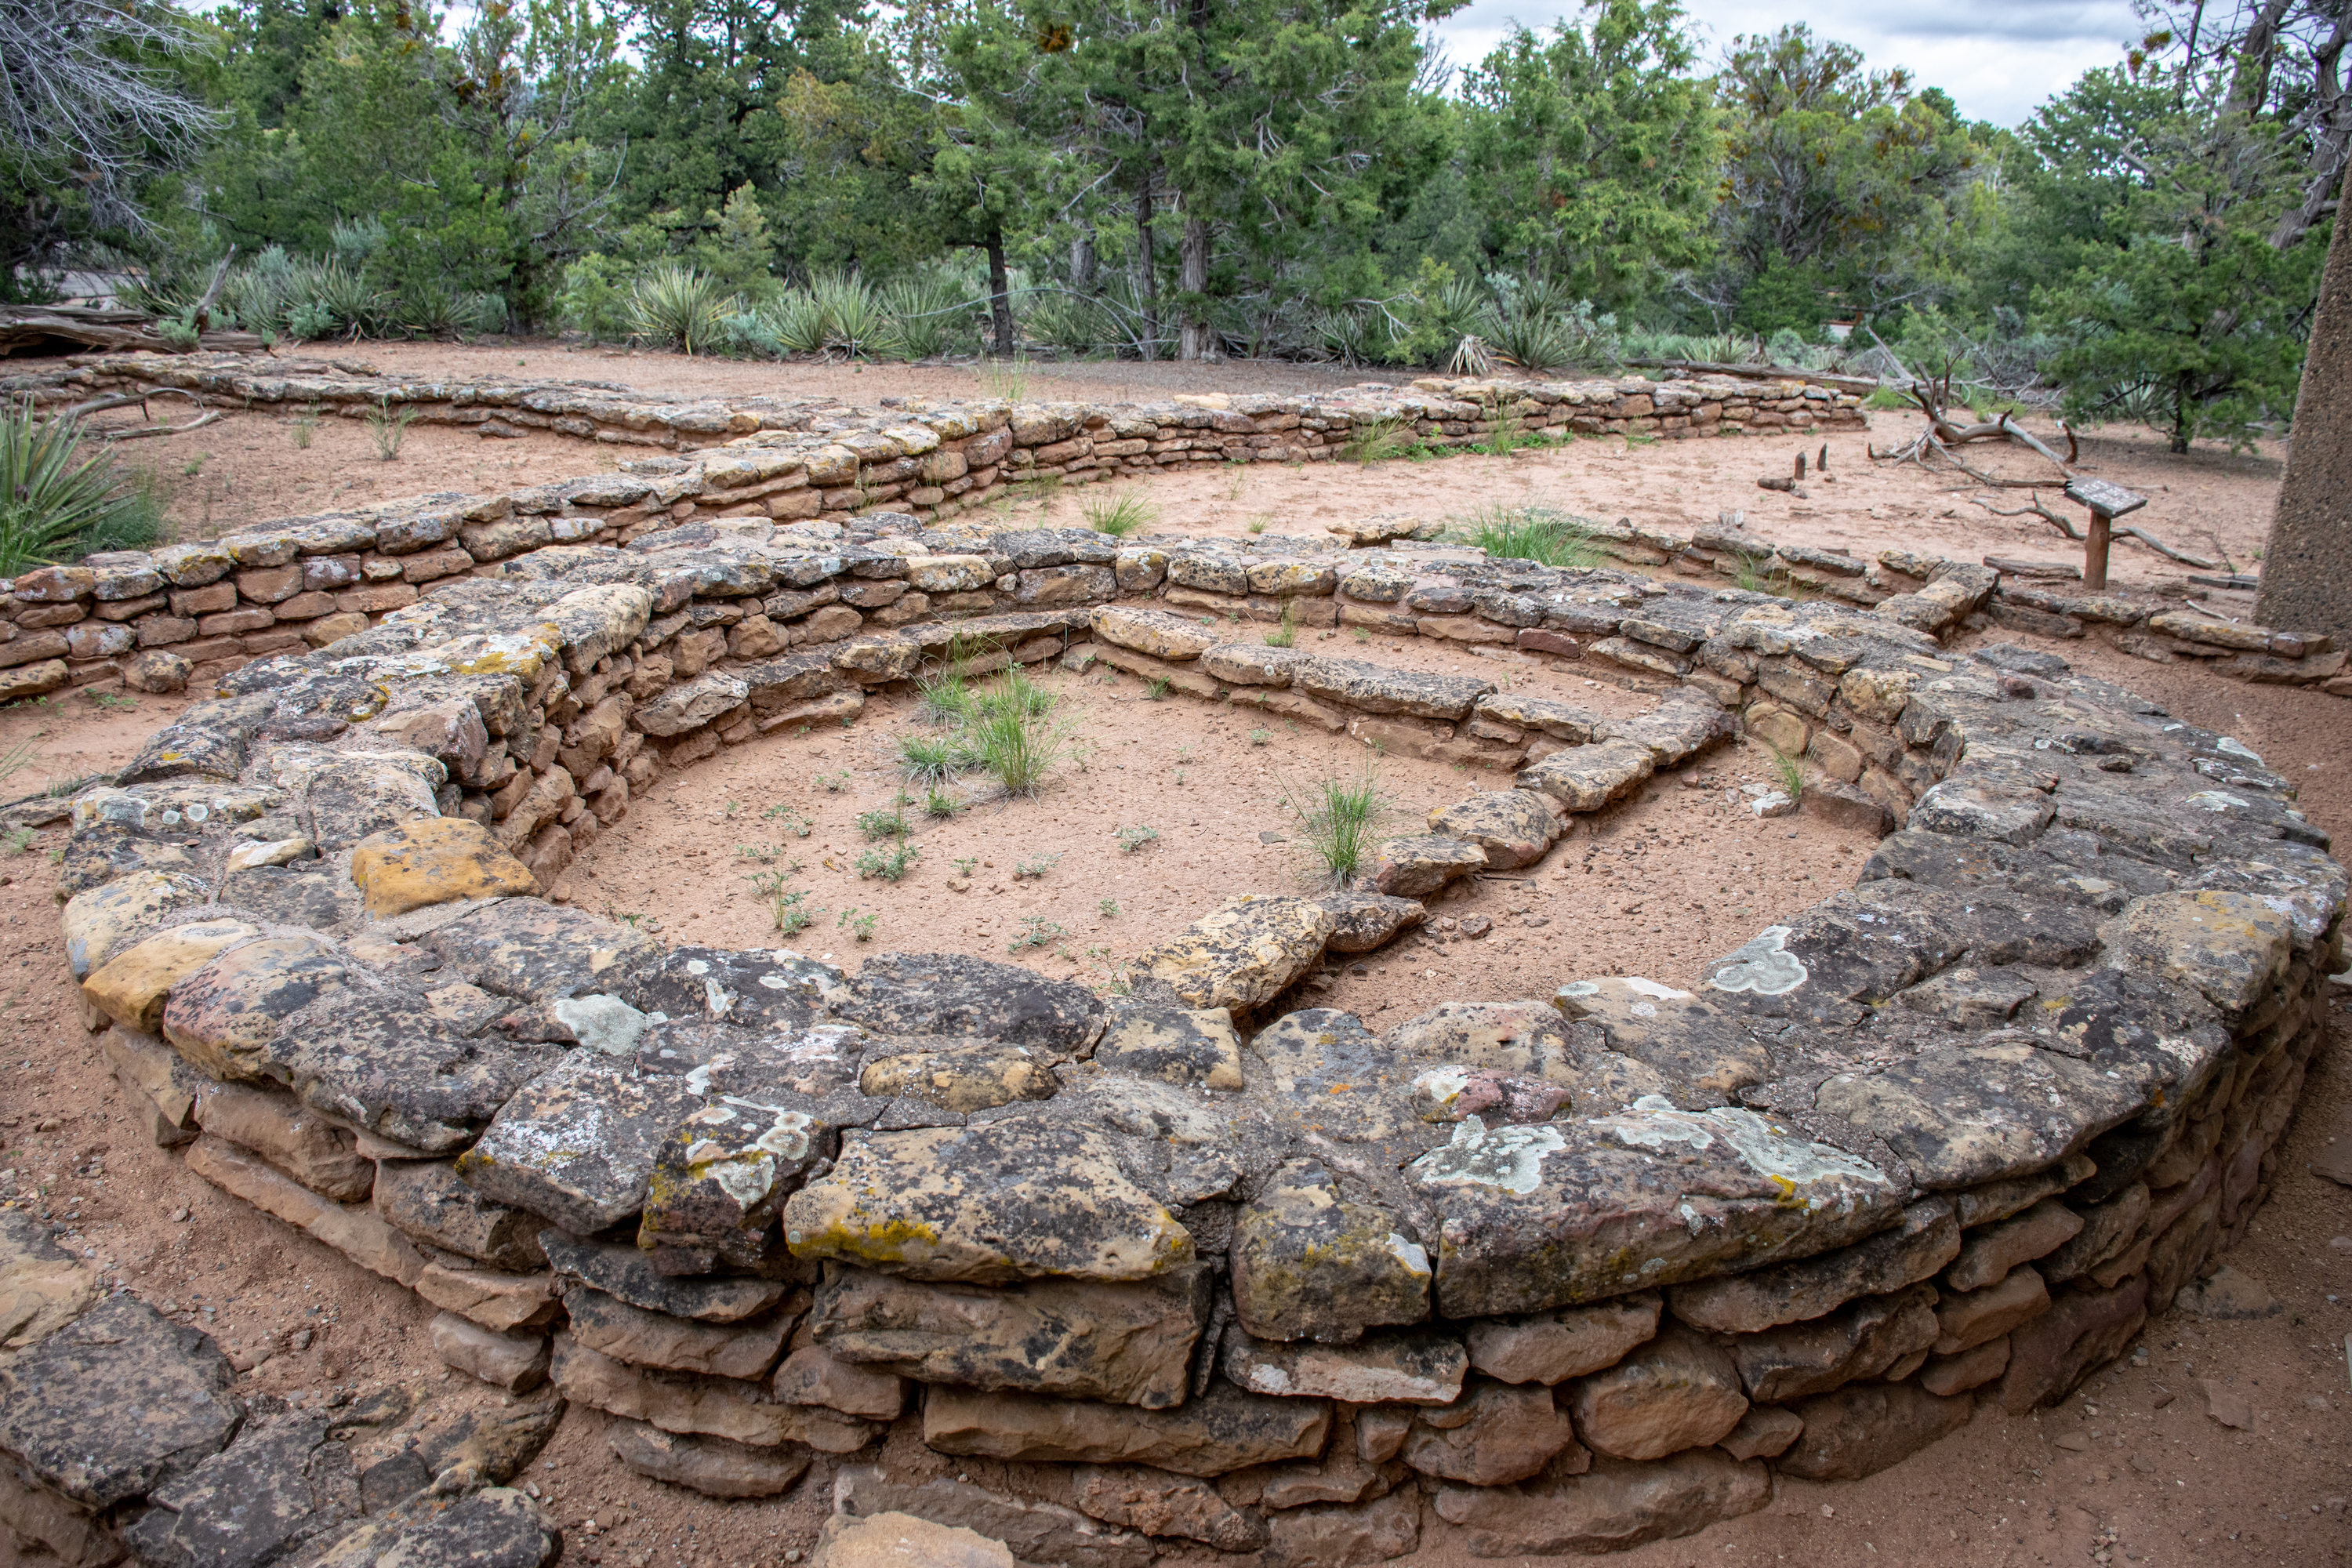 Photo comparing three different generations of architecture left behind by pueblo Indians